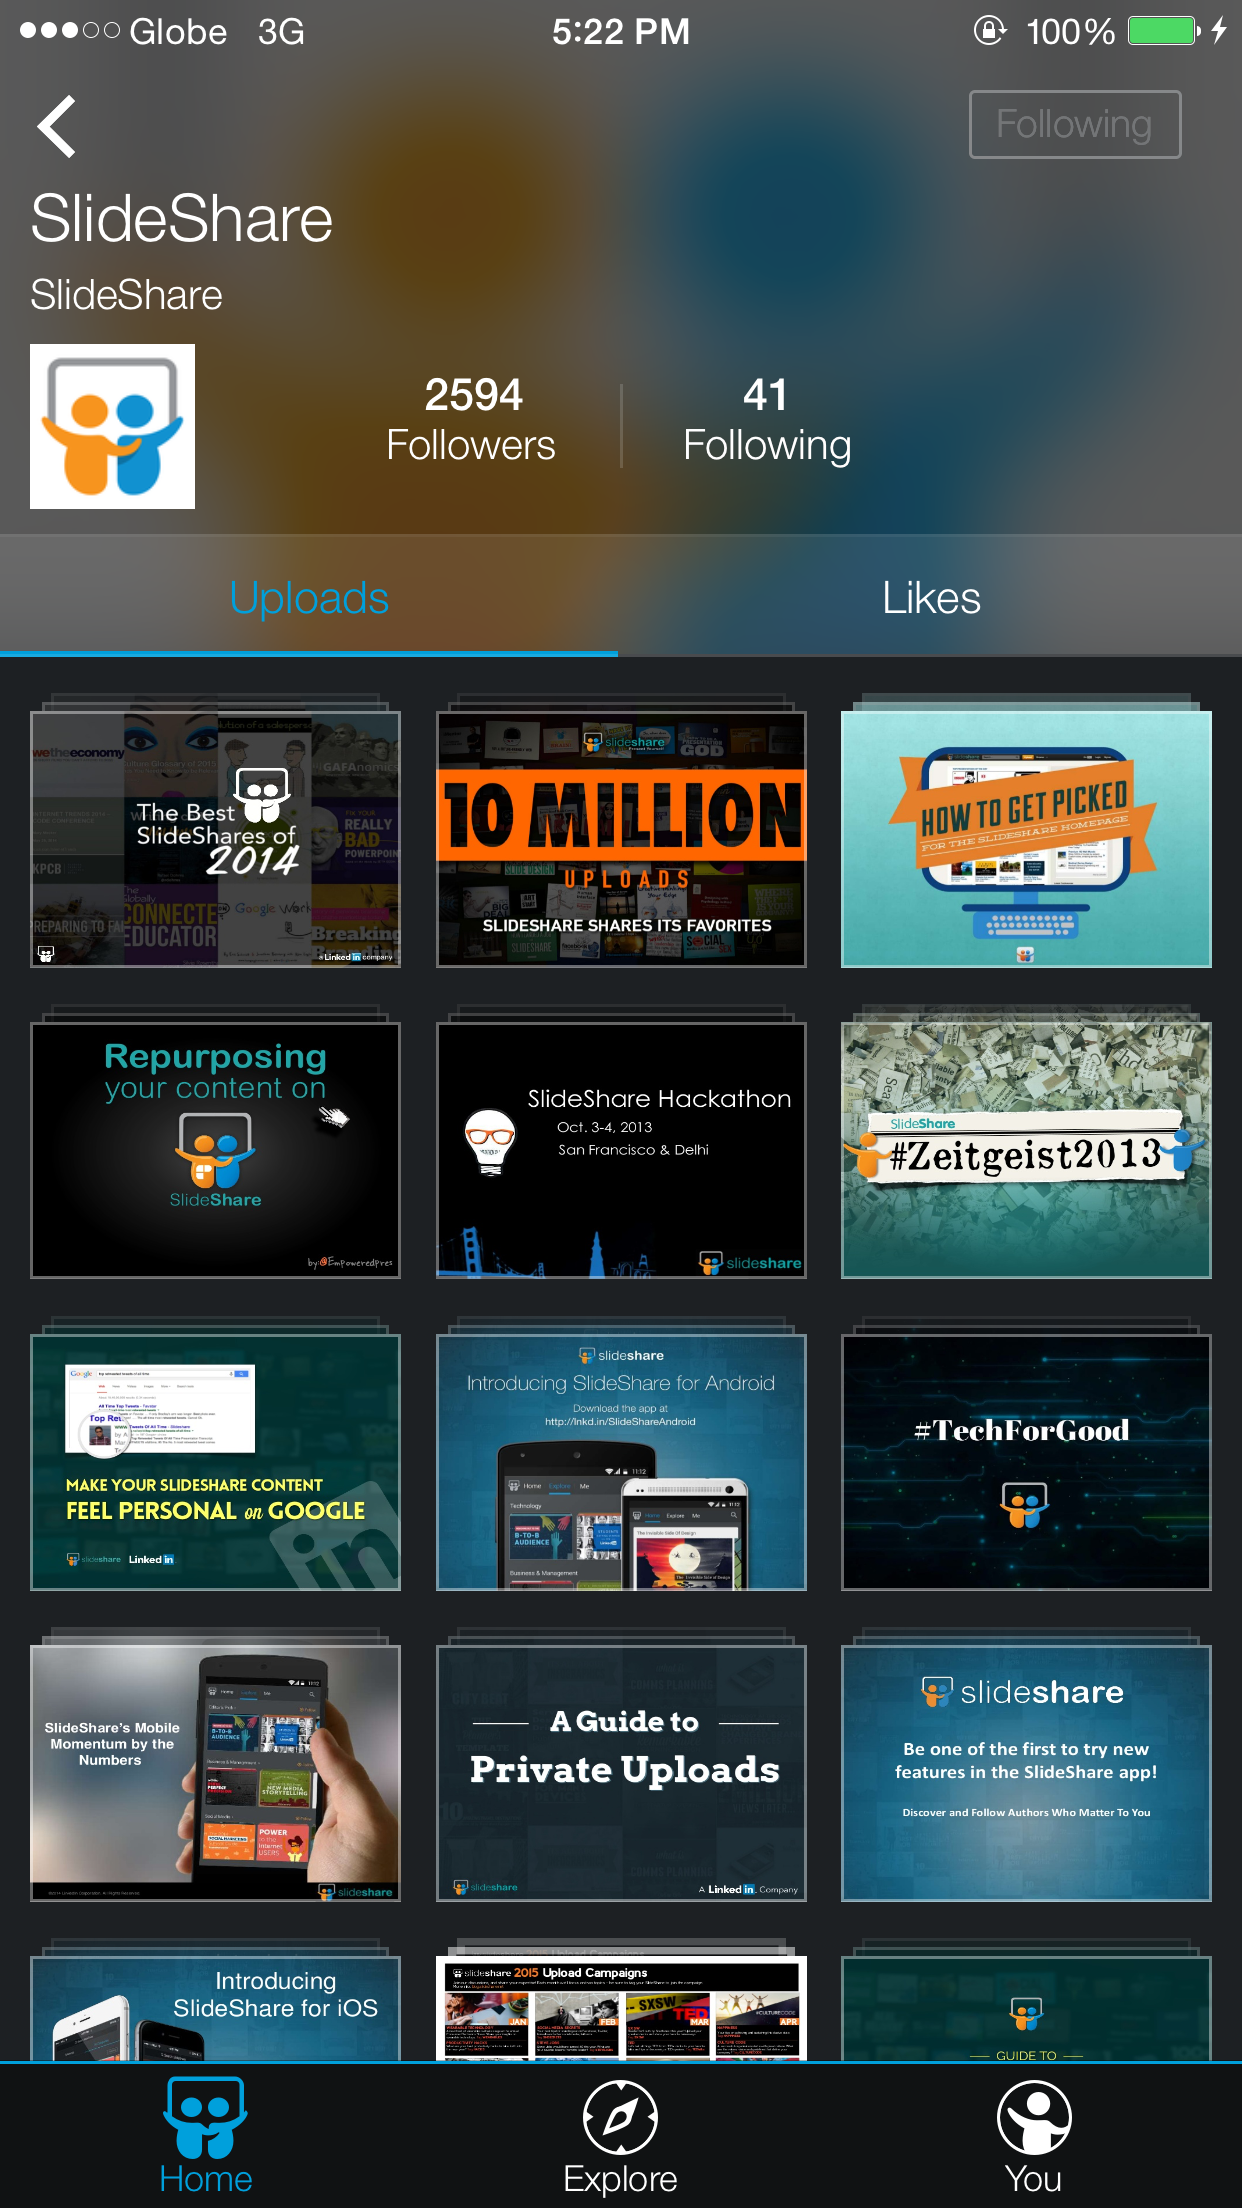 linkedin updates slideshare presentations app for iphone with new